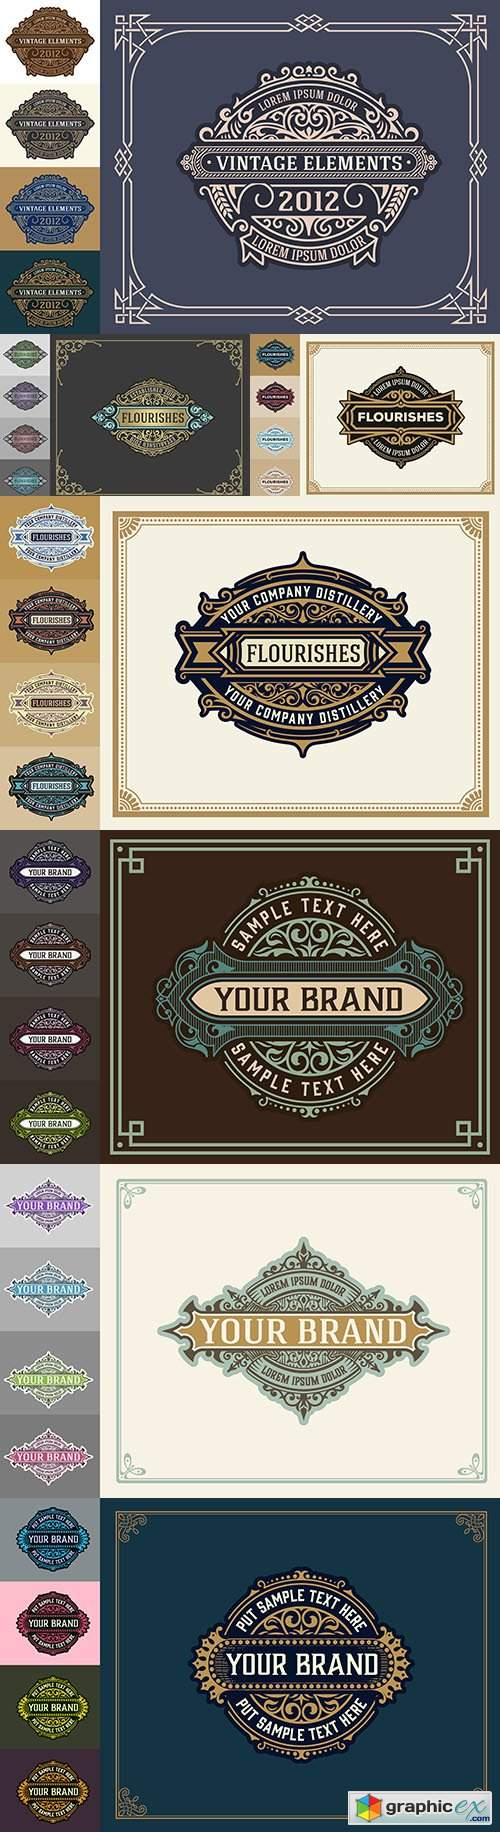 Luxury vintage logo template with decorative floral ornaments